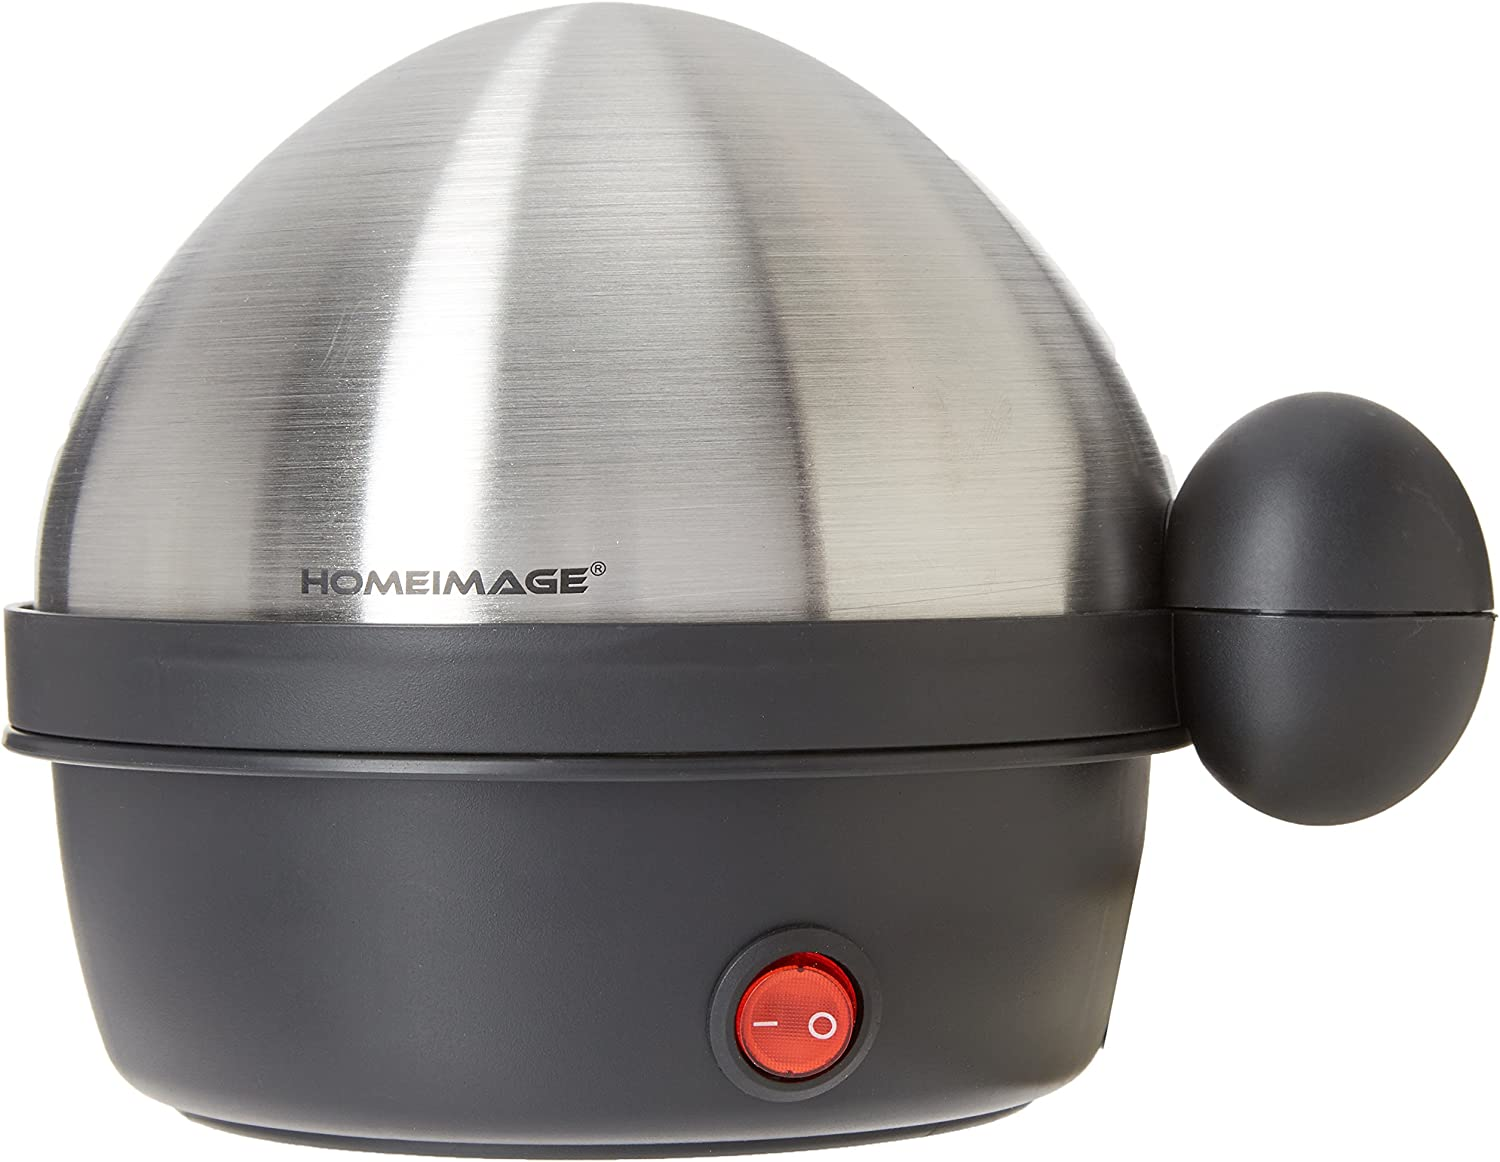 HOMEIMAGE Electric 7 Egg Cooker and Poacher with Stainless Steel Tray & Lid - HI-200AS